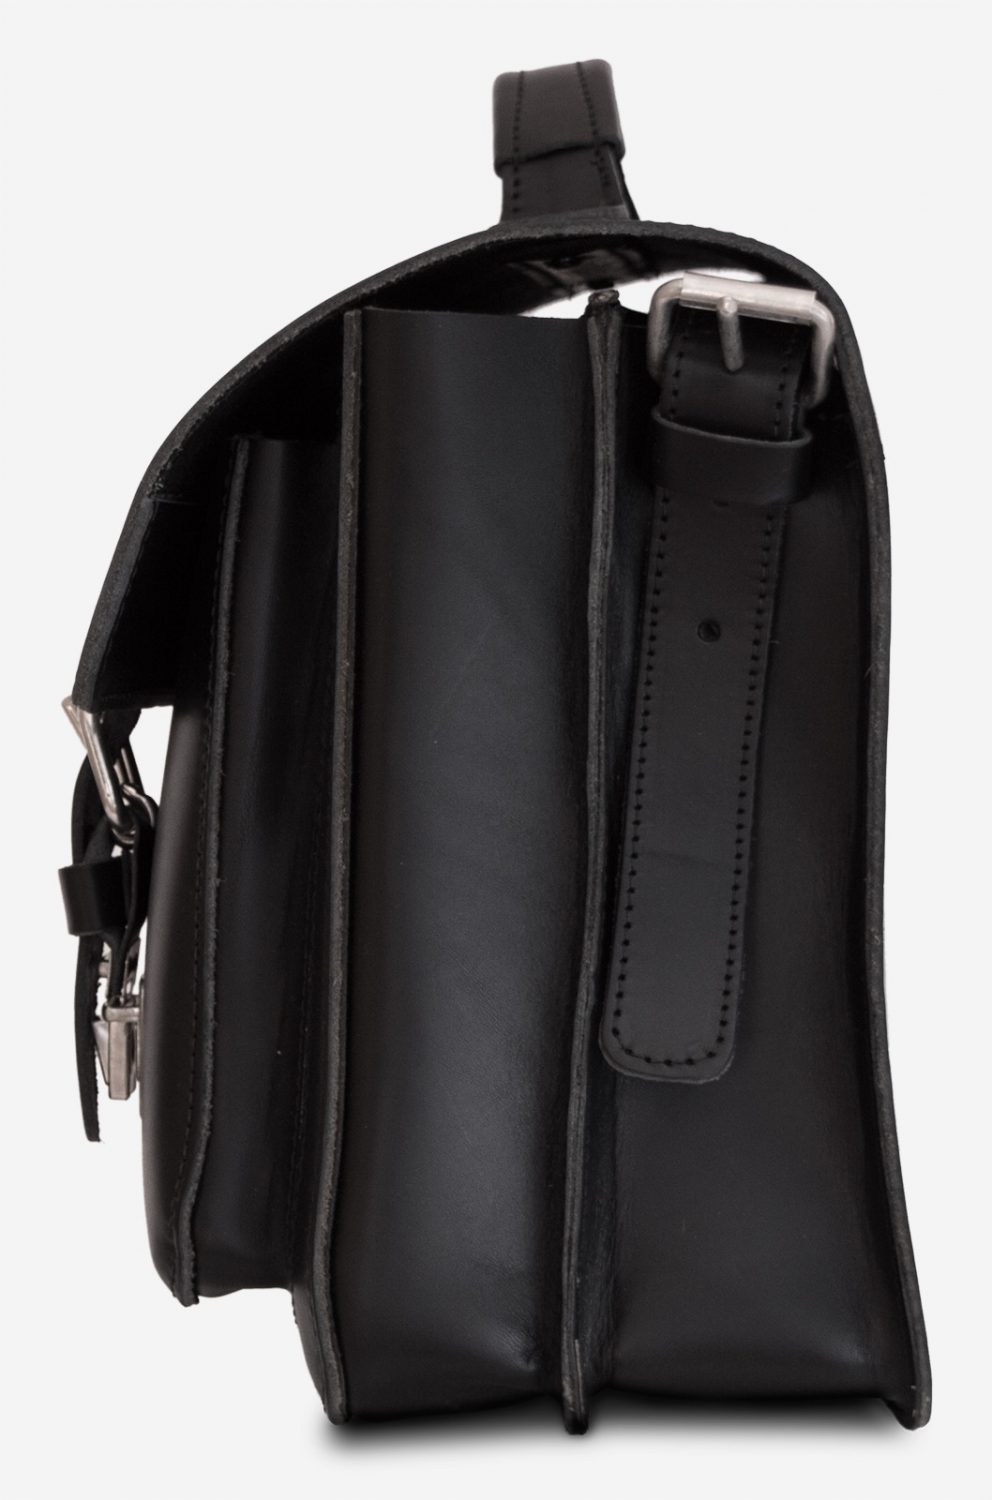 Side view of black leather student satchel with 2 gussets and large front pocket 112140.